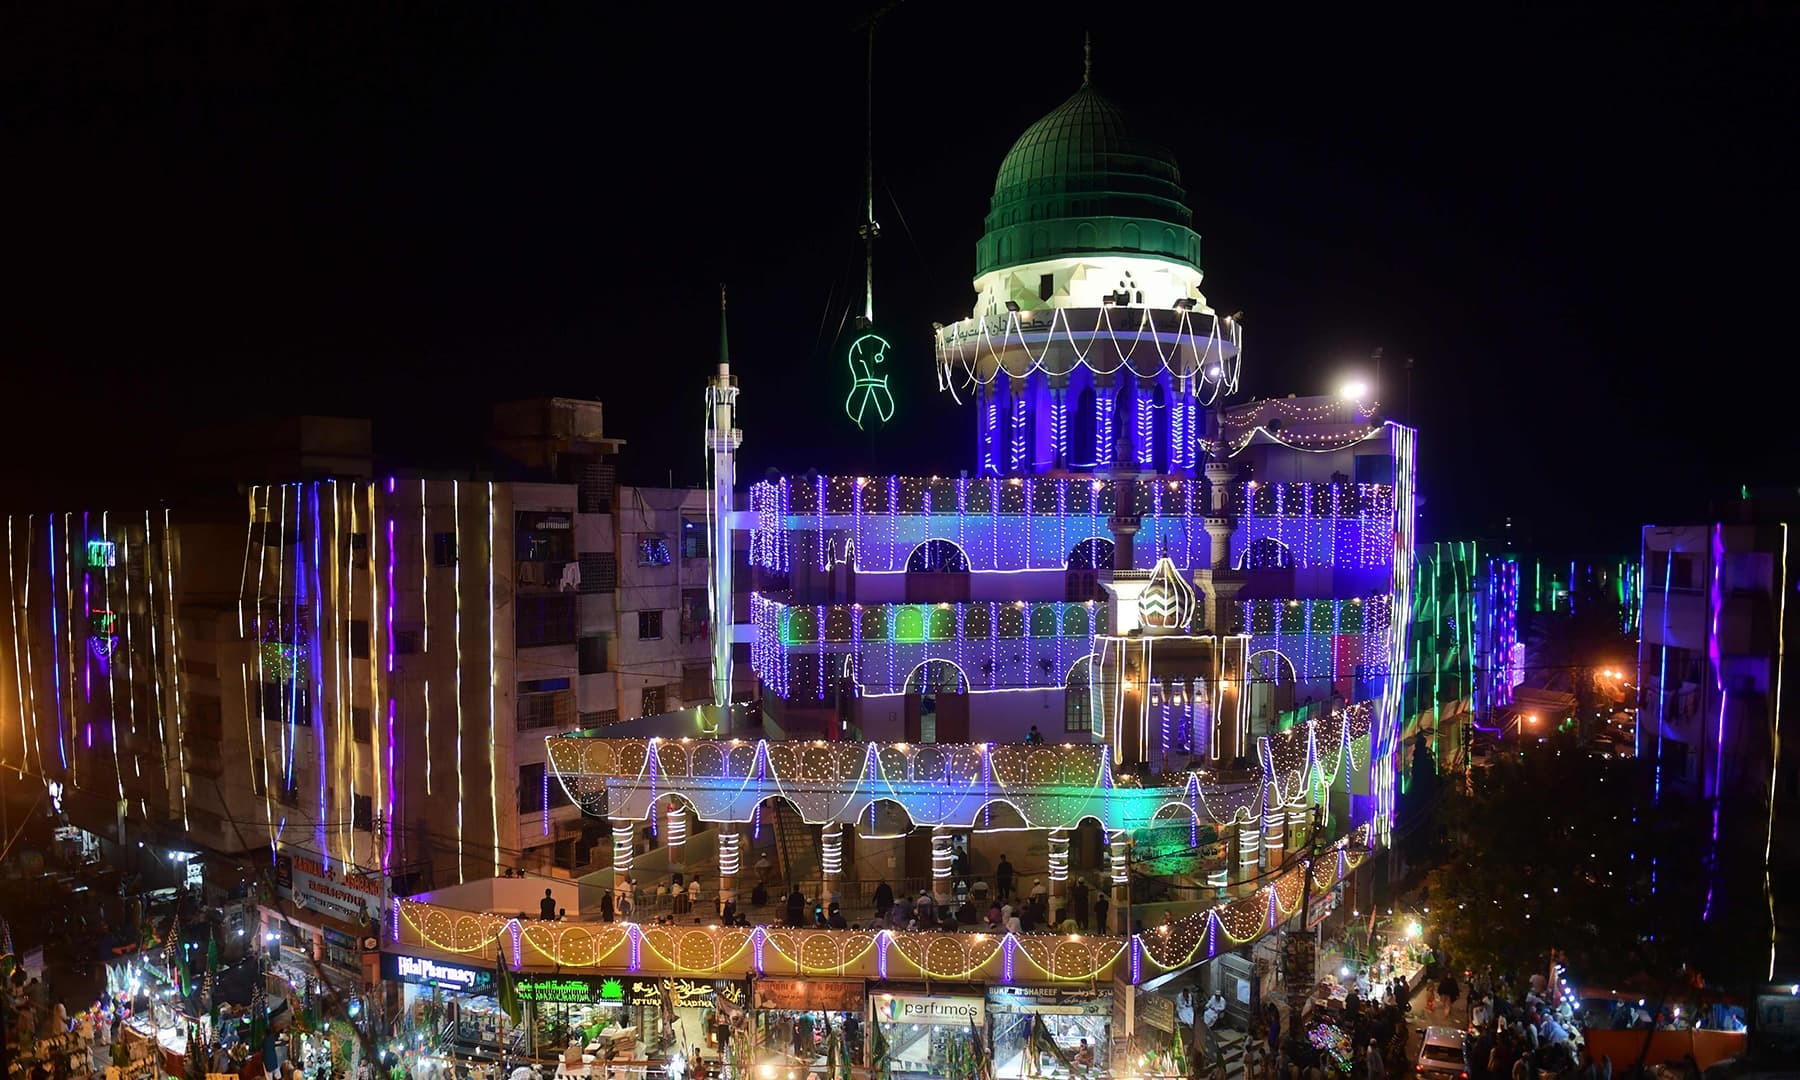 General view of an illuminated mosque and residential apartments ahead of celebrations for Eid-e-Milad-un-Nabi, the birthday of Prophet Mohammad, in Karachi on October 29, 2020. (Photo by Asif HASSAN / AFP) — AFP or licensors